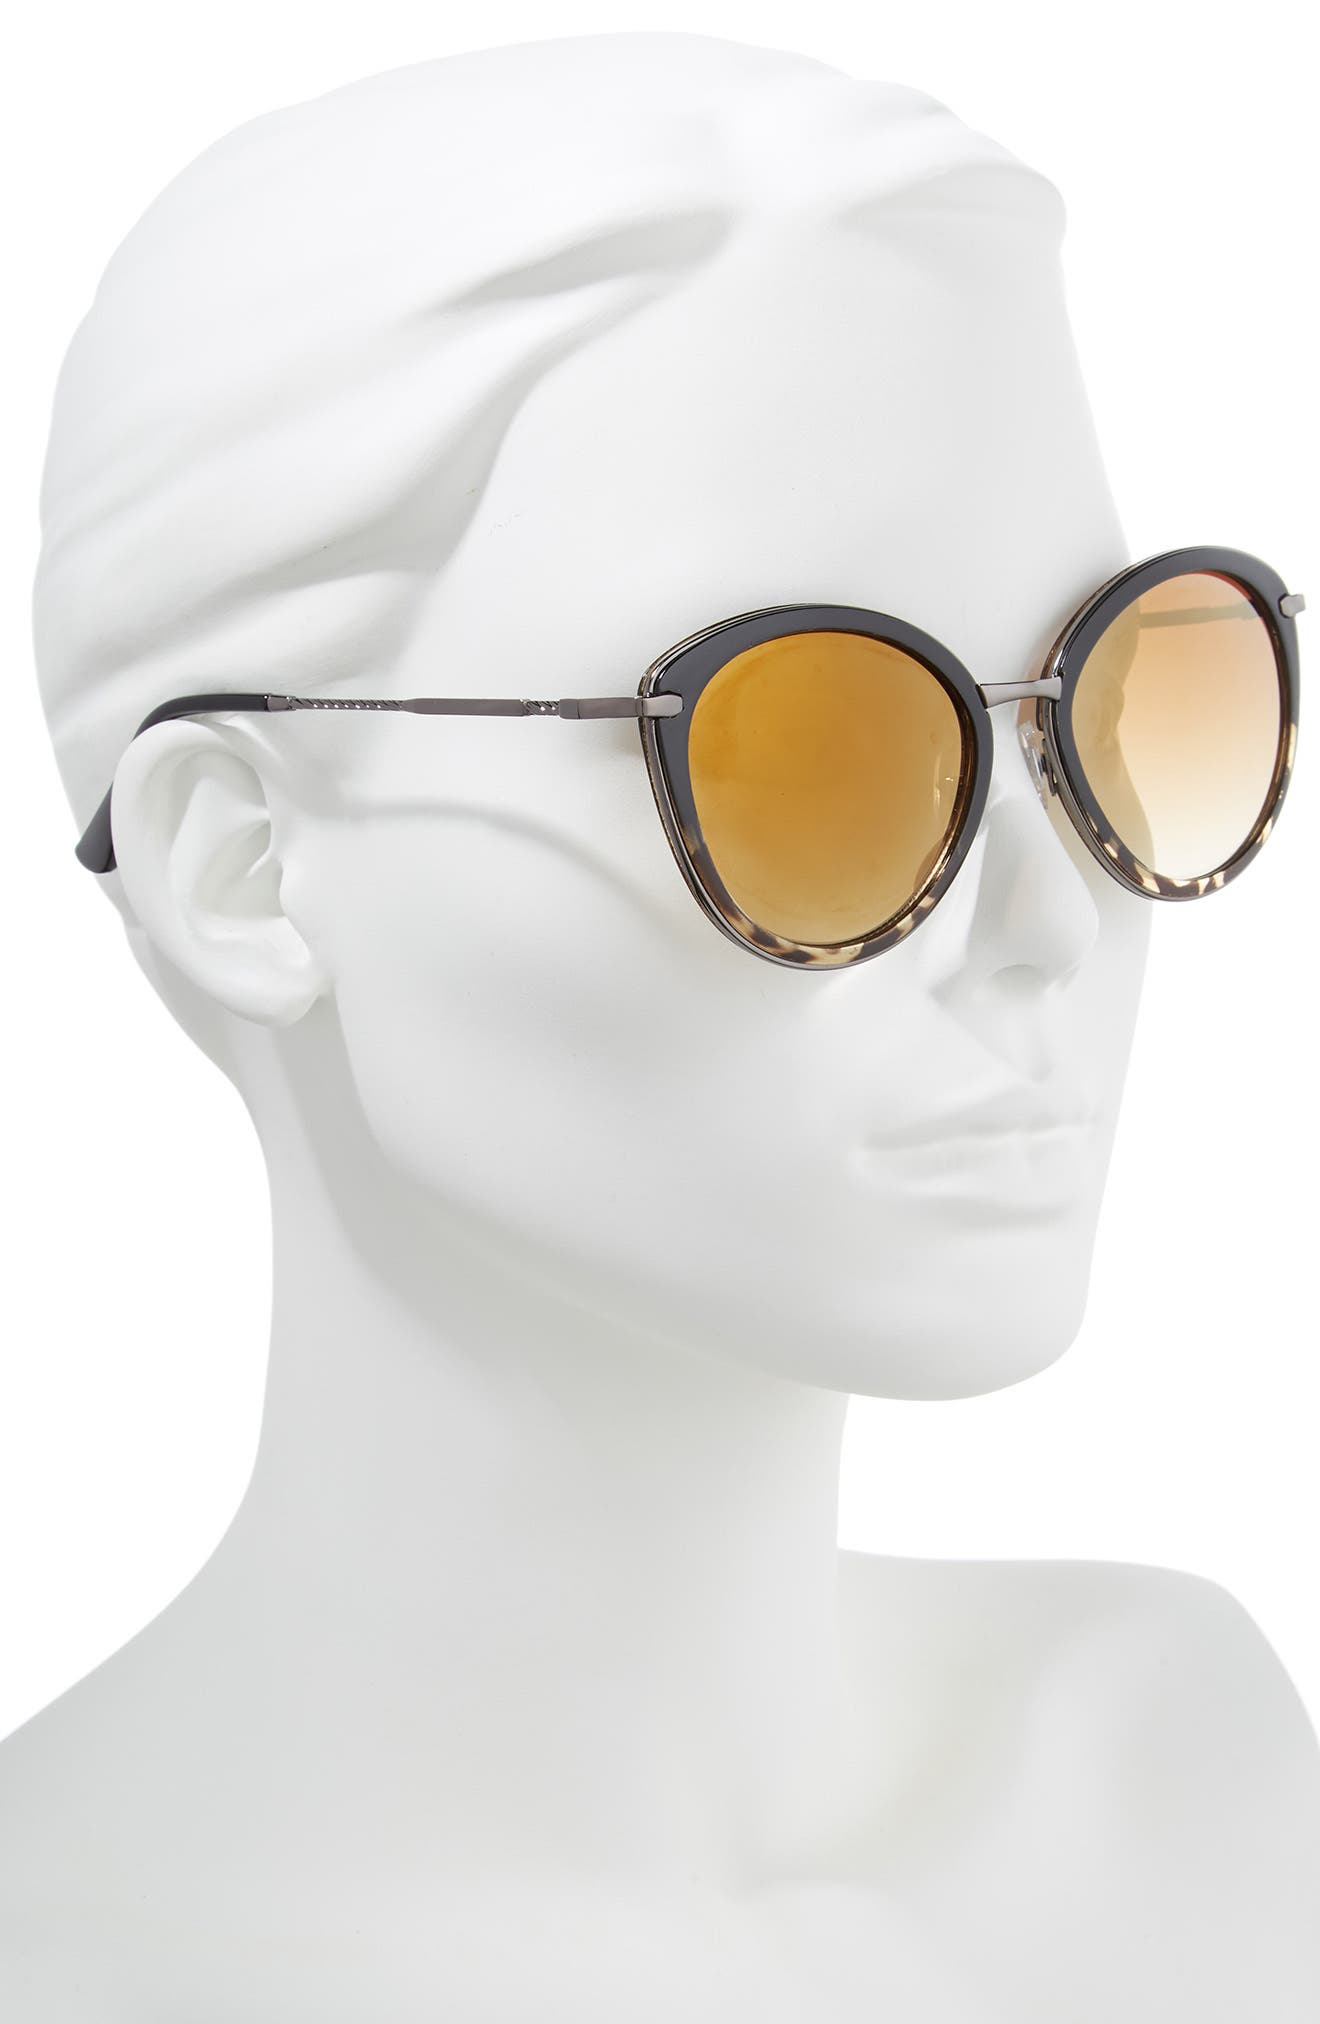 54mm Round Sunglasses,                             Alternate thumbnail 2, color,                             001